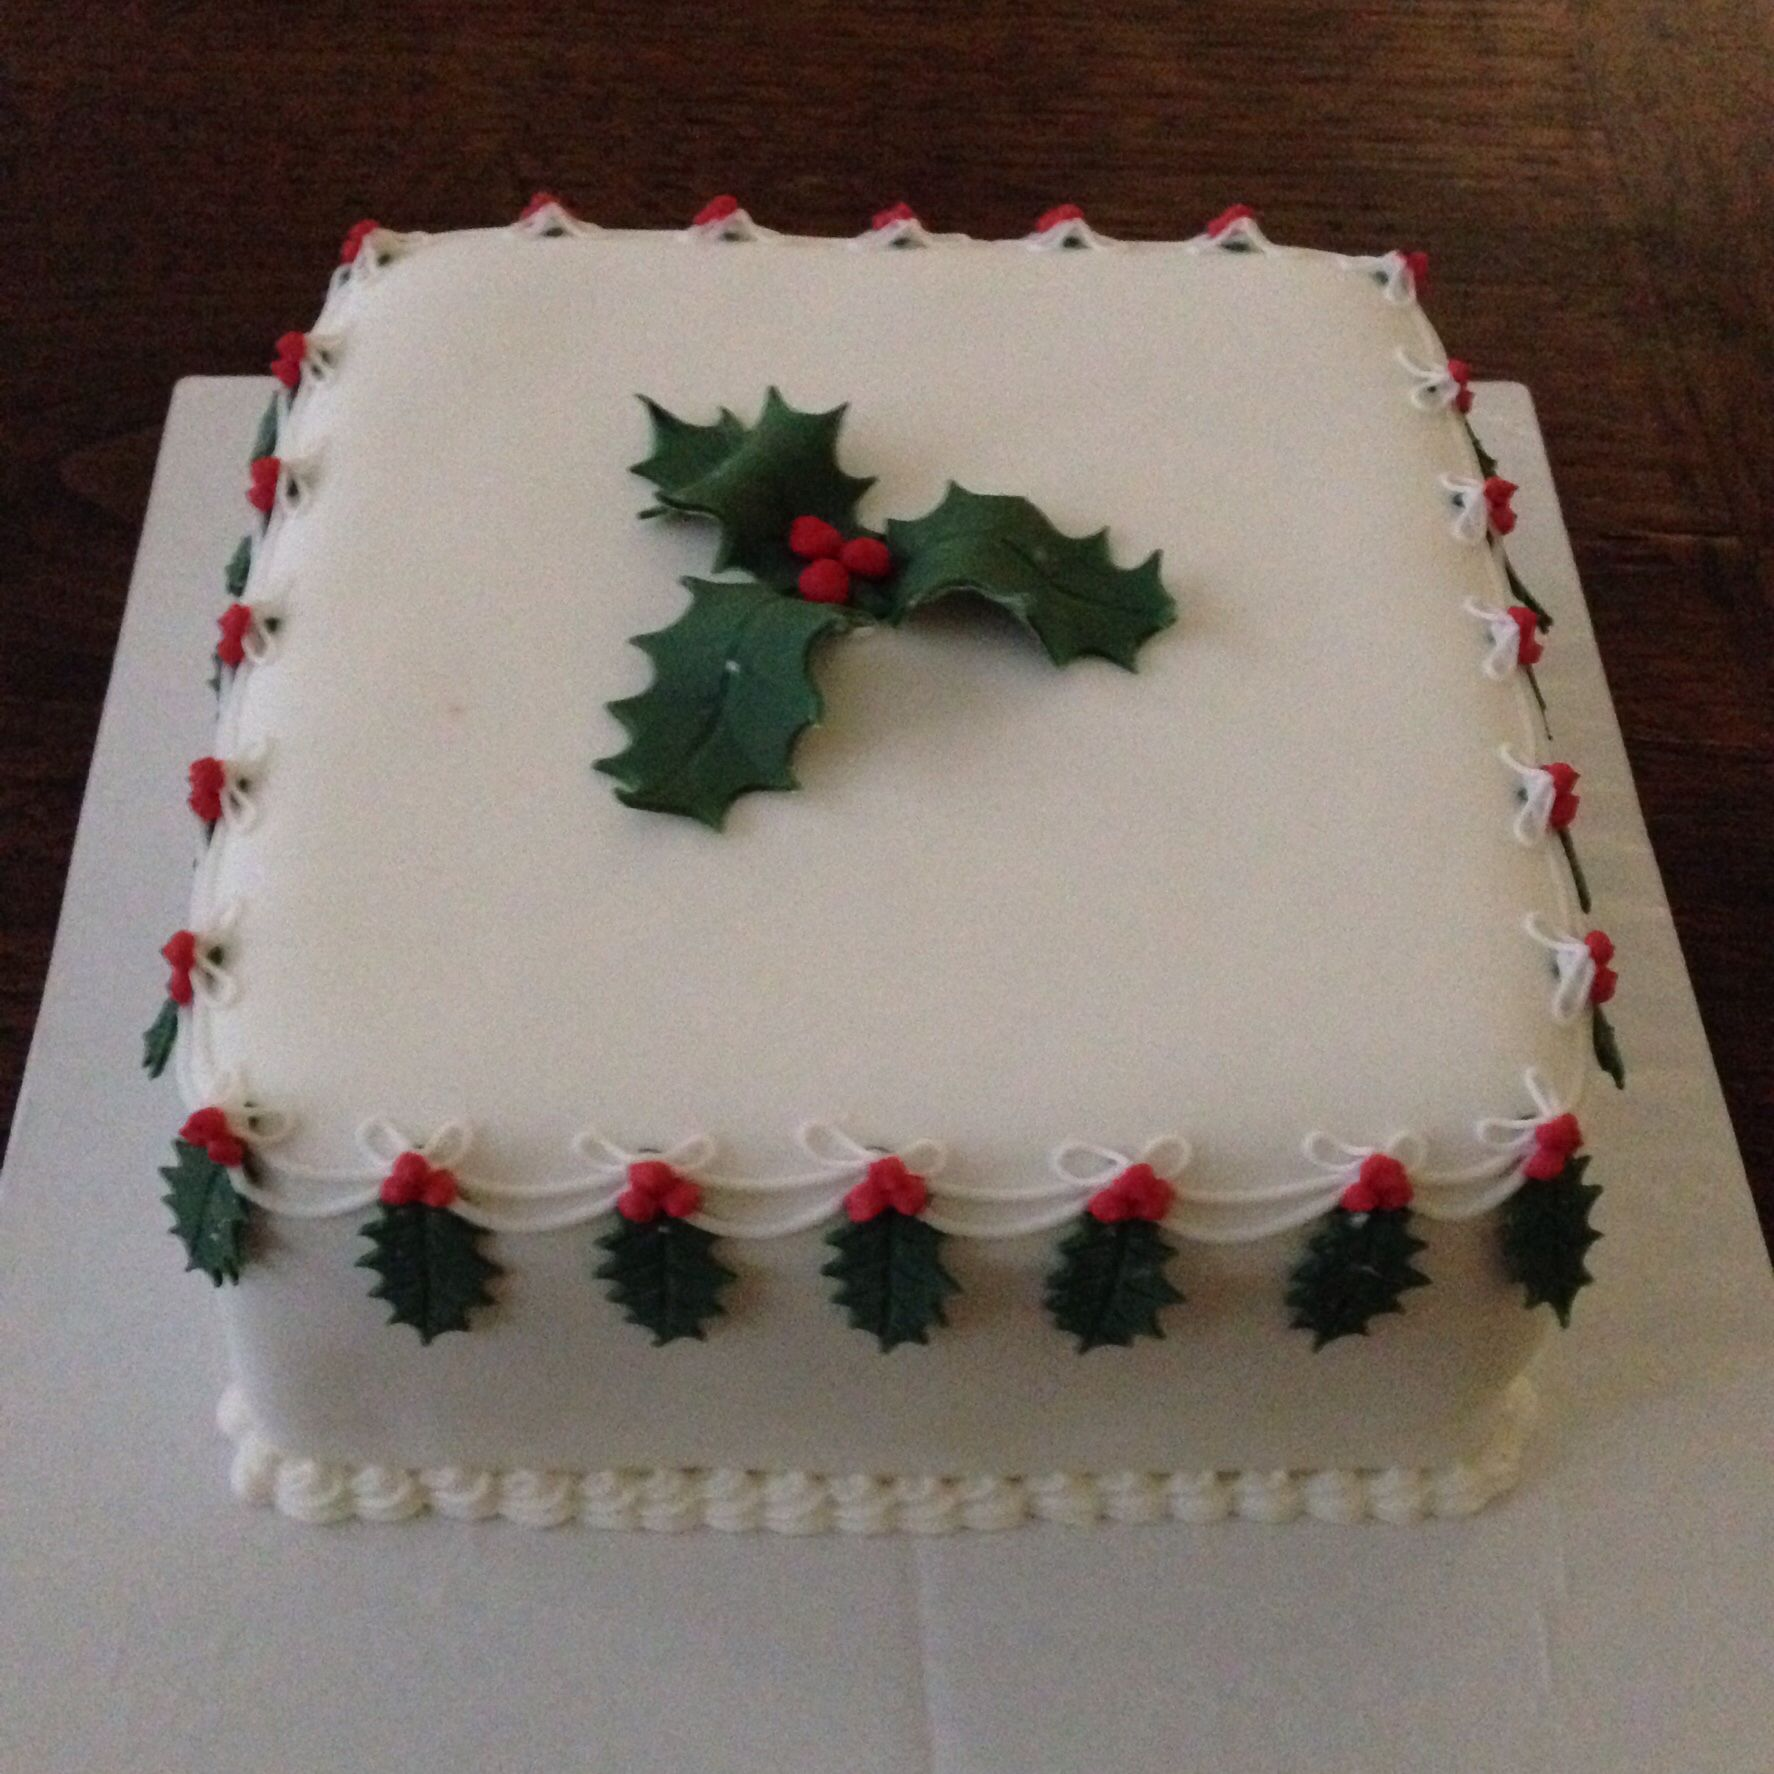 Another Christmas Cake Square Sugar Paste Fruit